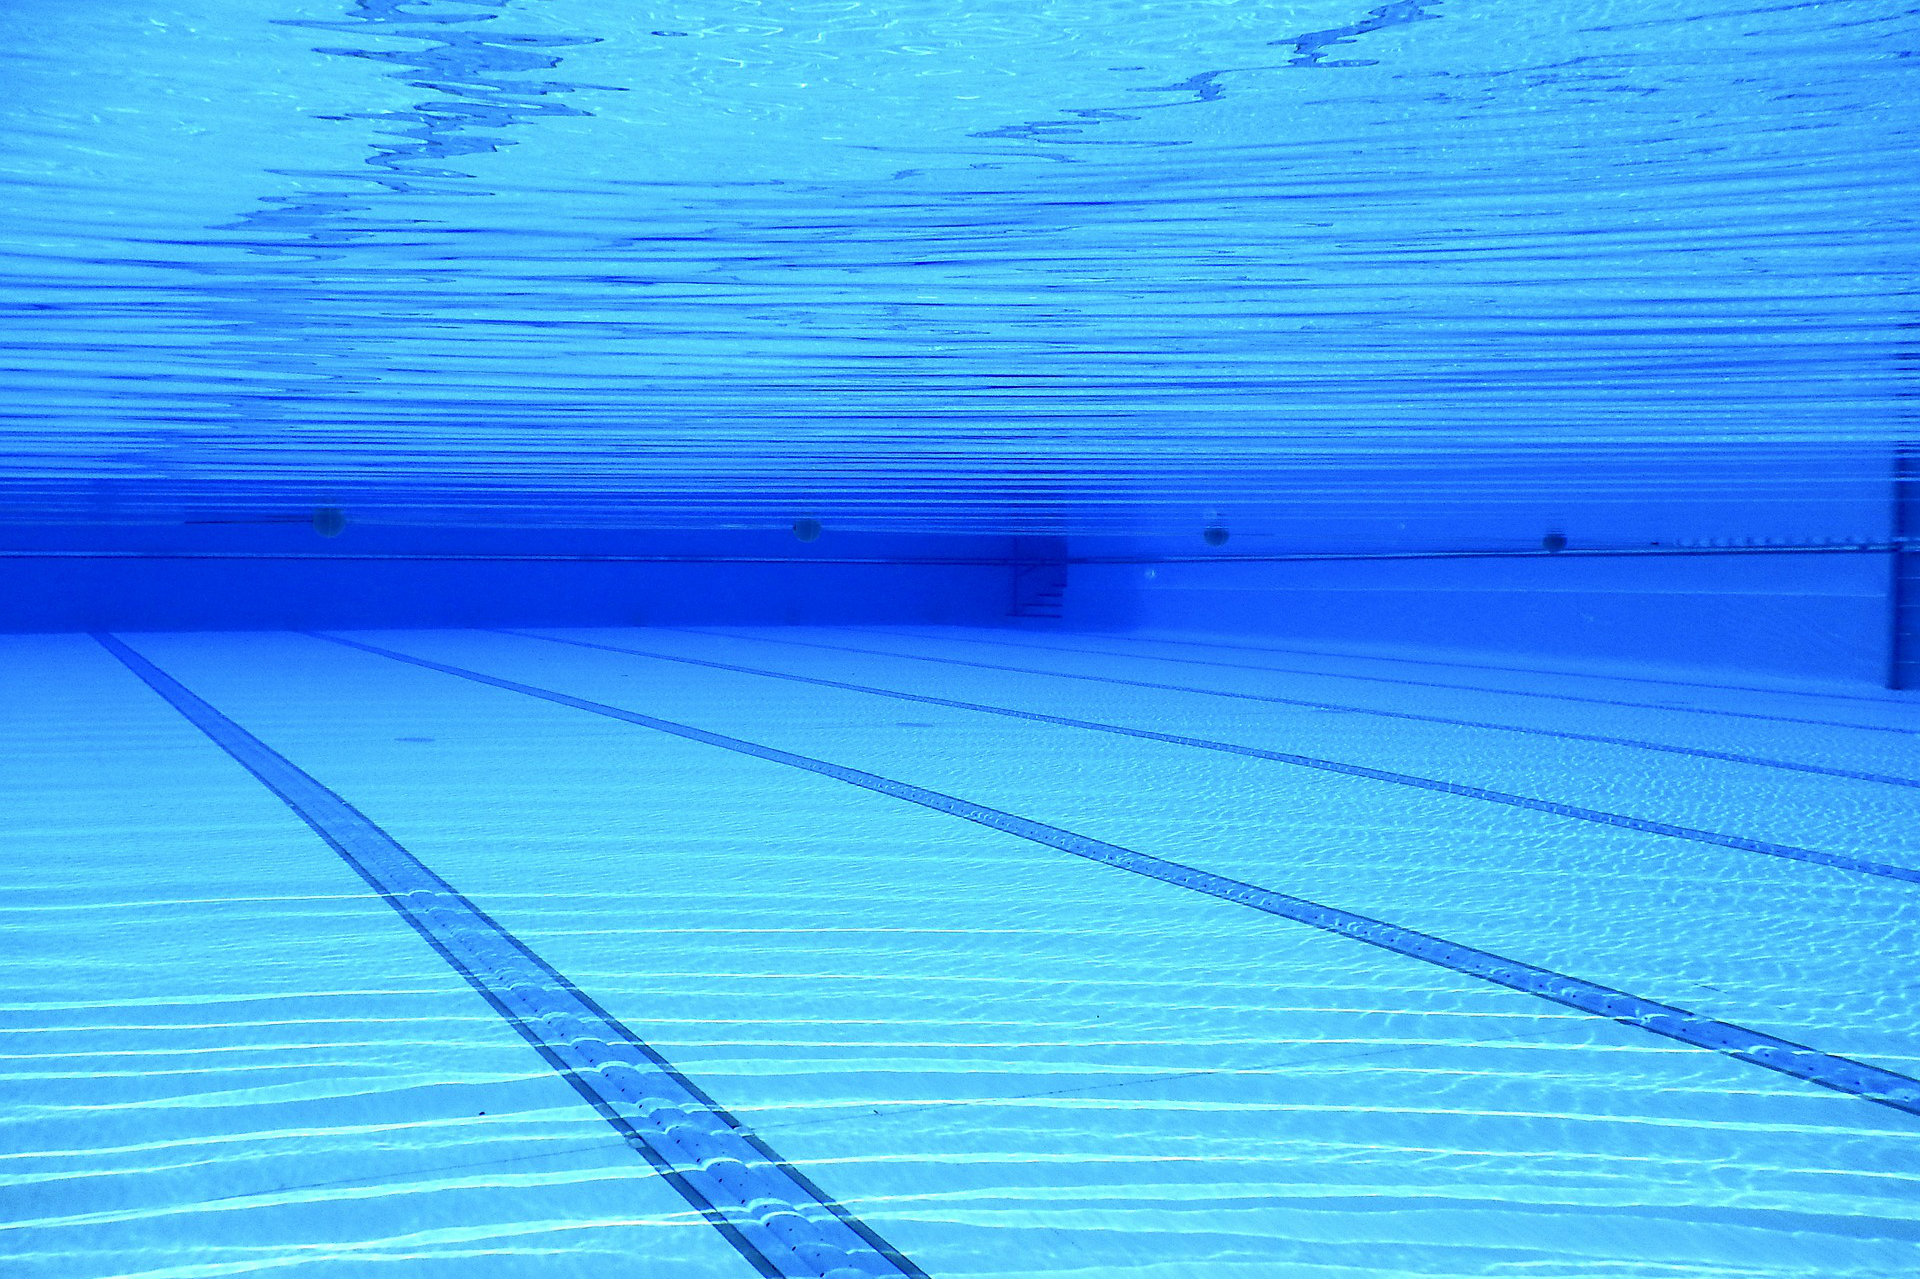 Can someone please explain the workings of a buffer in a swimming pool?